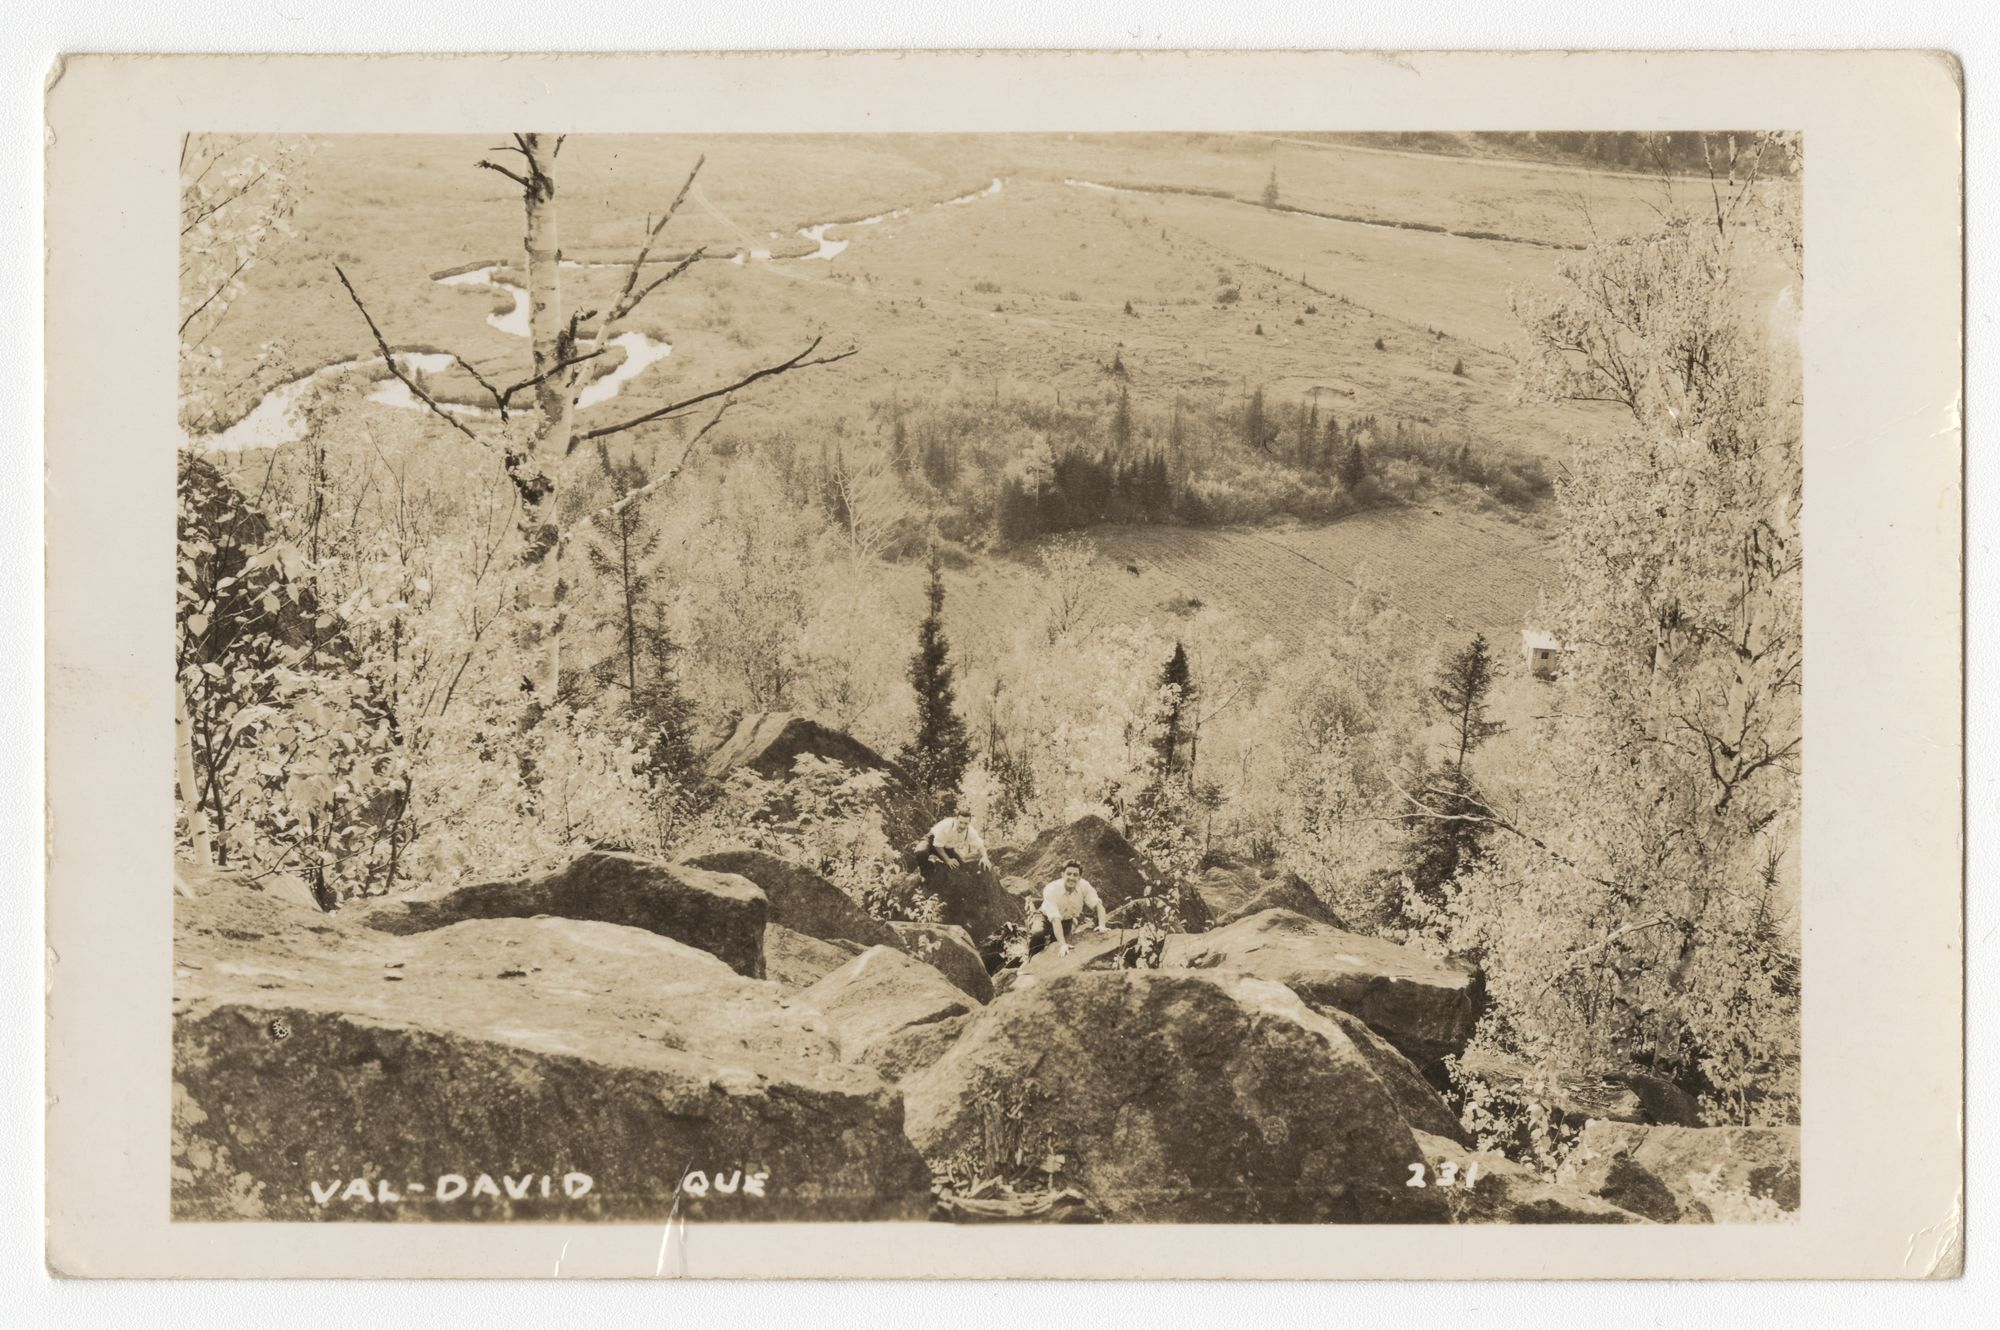 Vintage postcard looking down from a summit; two men are climbing up over a series of boulders. In the background is part of the valley of Val-David.